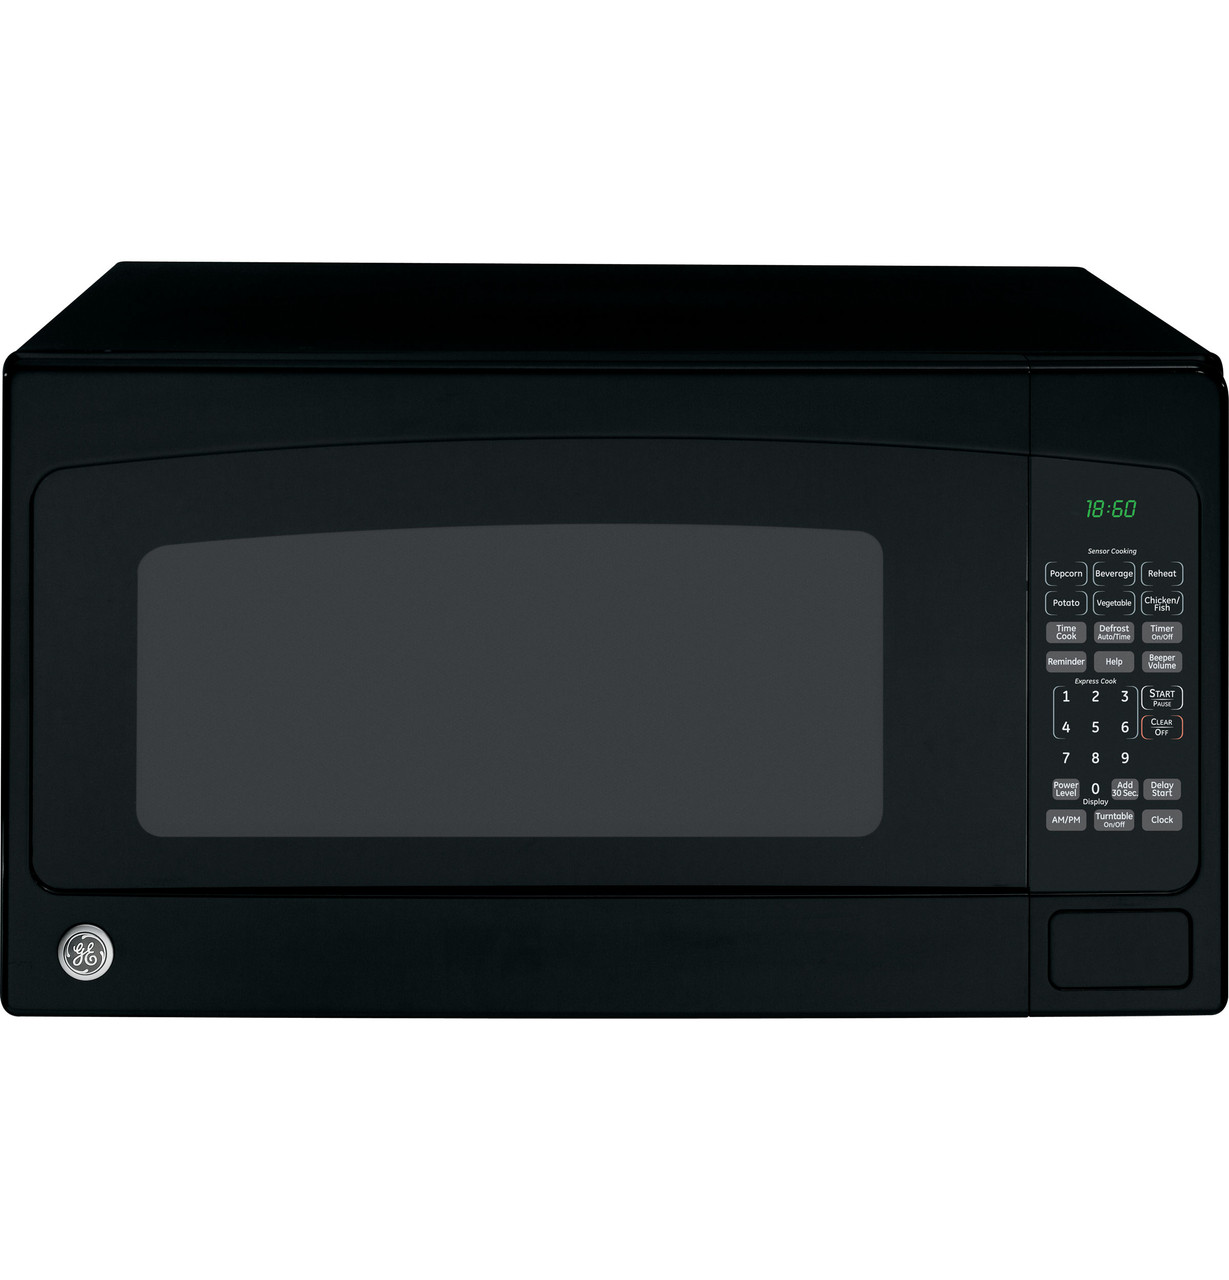 ge 1 8 cu ft countertop microwave oven jeb1860dmbb